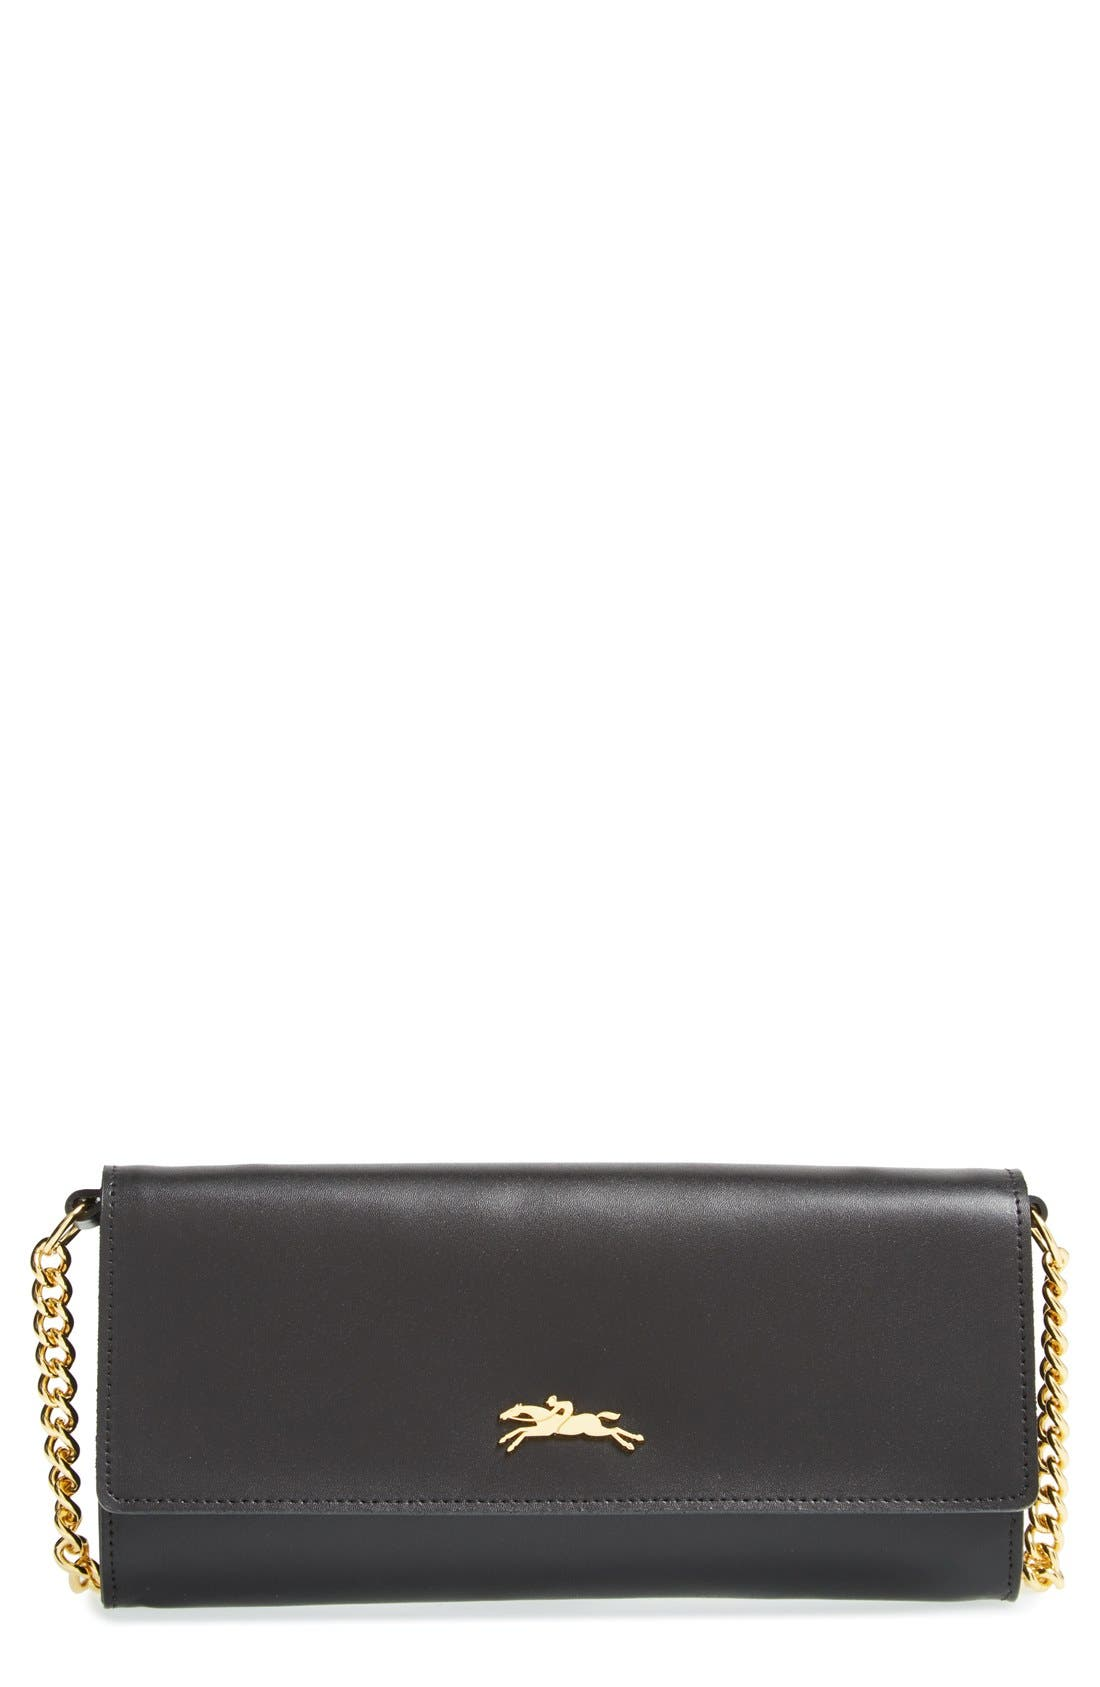 Alternate Image 1 Selected - Longchamp 'Honore' Wallet on A Chain